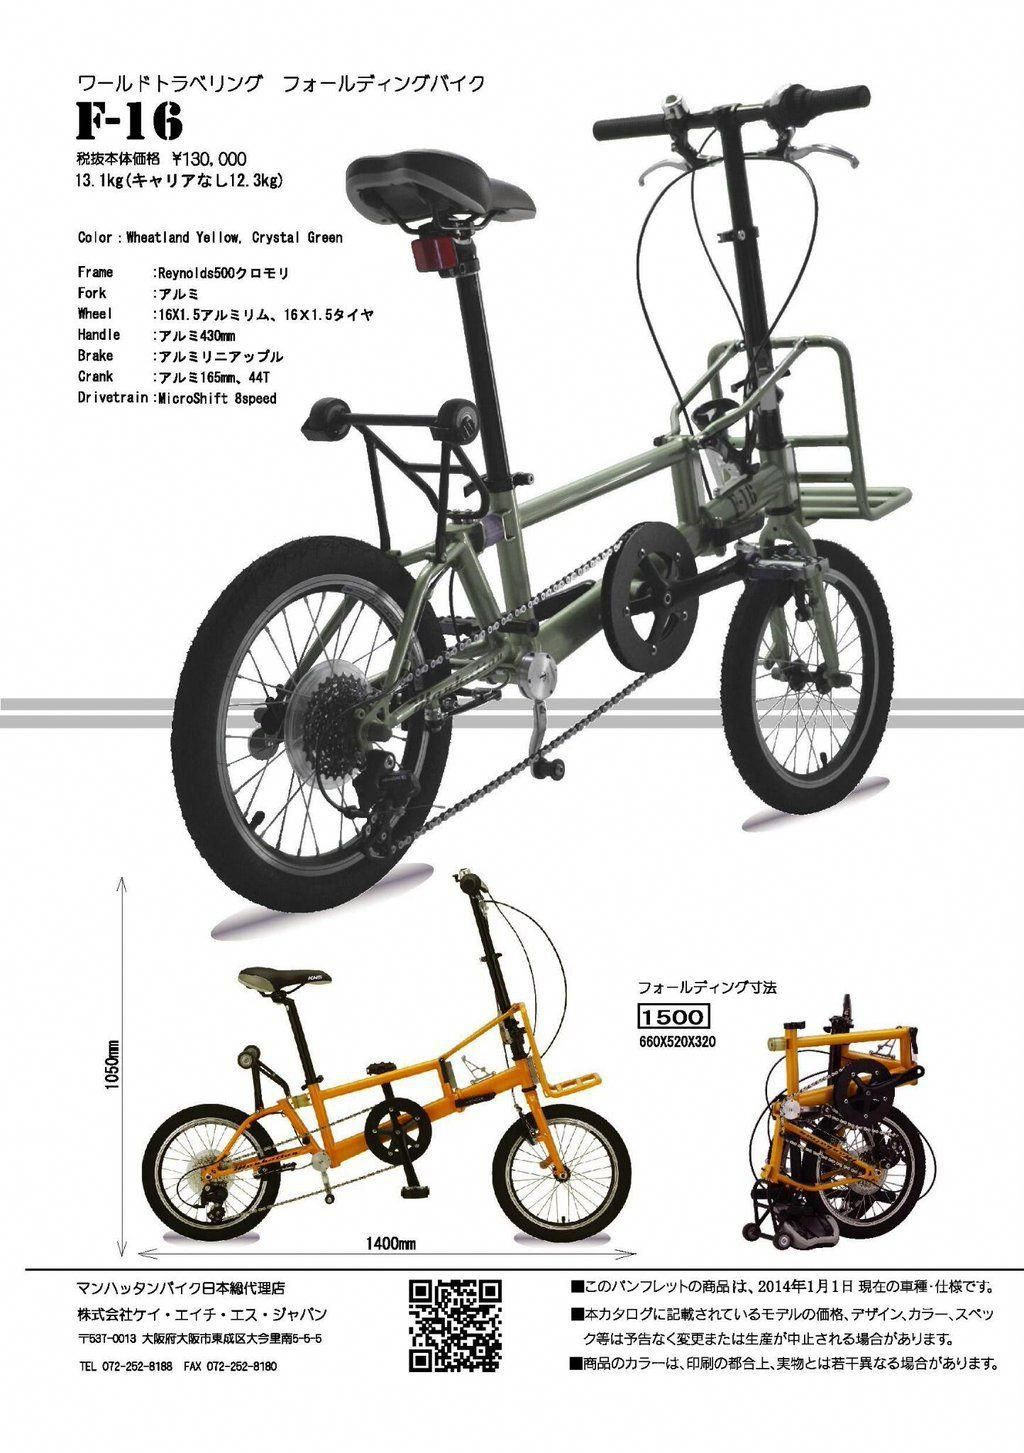 Wow I Seriously Am Into What These People Designed On This Specialized Scramblermotorcyclekit ミニベロ 自転車 自転車 カスタム 折りたたみ自転車